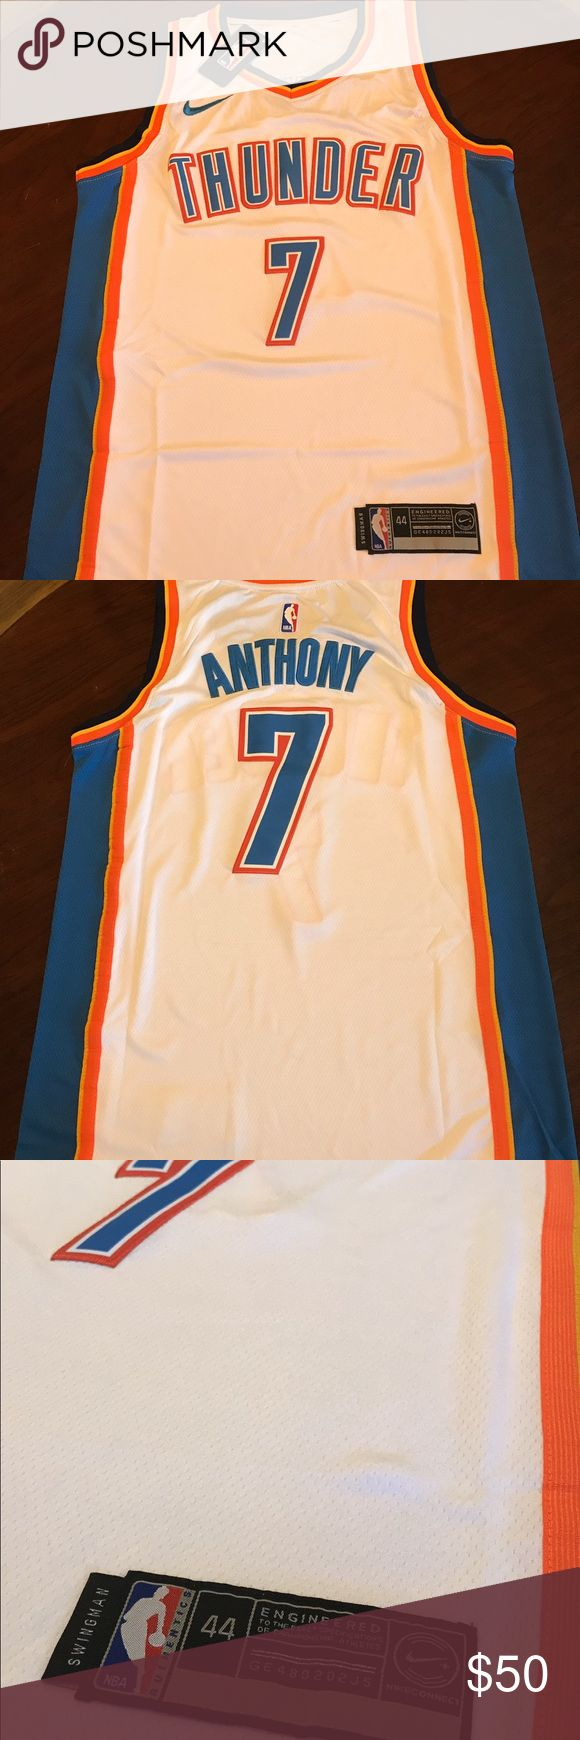 Oklahoma City Thunder #7 Carmelo Anthony Jersey ⭐️Top Rated Seller⭐️ ---------------------- DETAILS: Oklahoma City Thunder  #7 Carmelo Anthony jersey White (new with tags)  Size: Adult's Men All stiched ---------------------- Arrives in (2-5 days) 1-2 days processing ----------------------- TAGS: Golden state warriors, curry, lebron, nba, miami, mvp, cleveland, cavaliers, lakers, houston, celtics, heat, jordan, adidas, spurs, knicks, wade, westbroock, durant, thunder, pointguard…